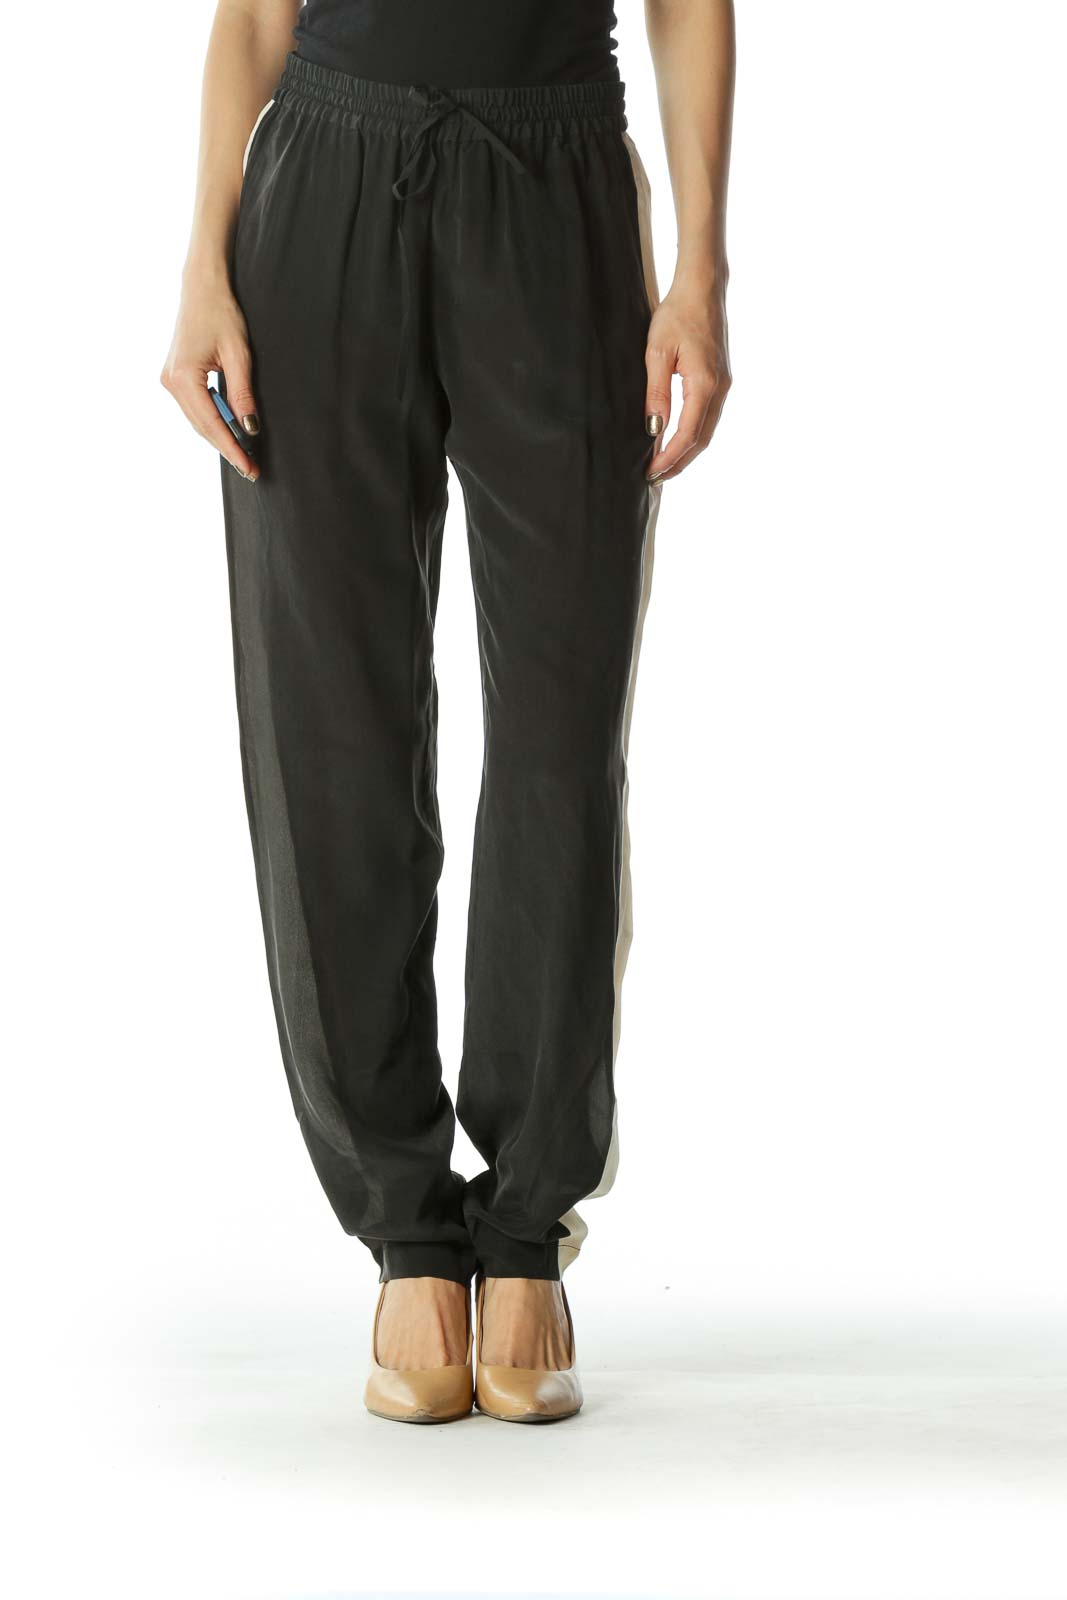 Black and Beige 100% Silk Pants